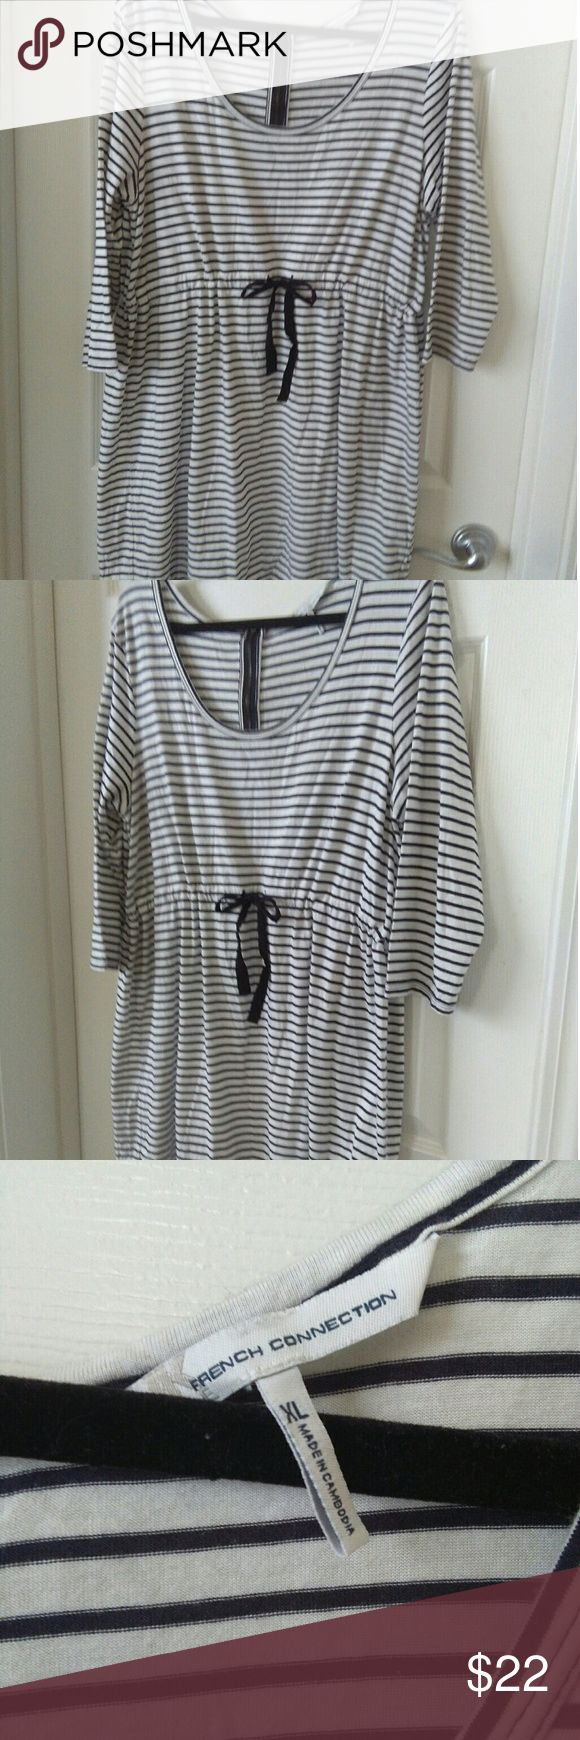 Uk French Connection Dress Adorable black & white striped dress with drawstring tie.  Zippered back.  Cute with tights or leggings.  Great condition. French Connection Dresses Midi